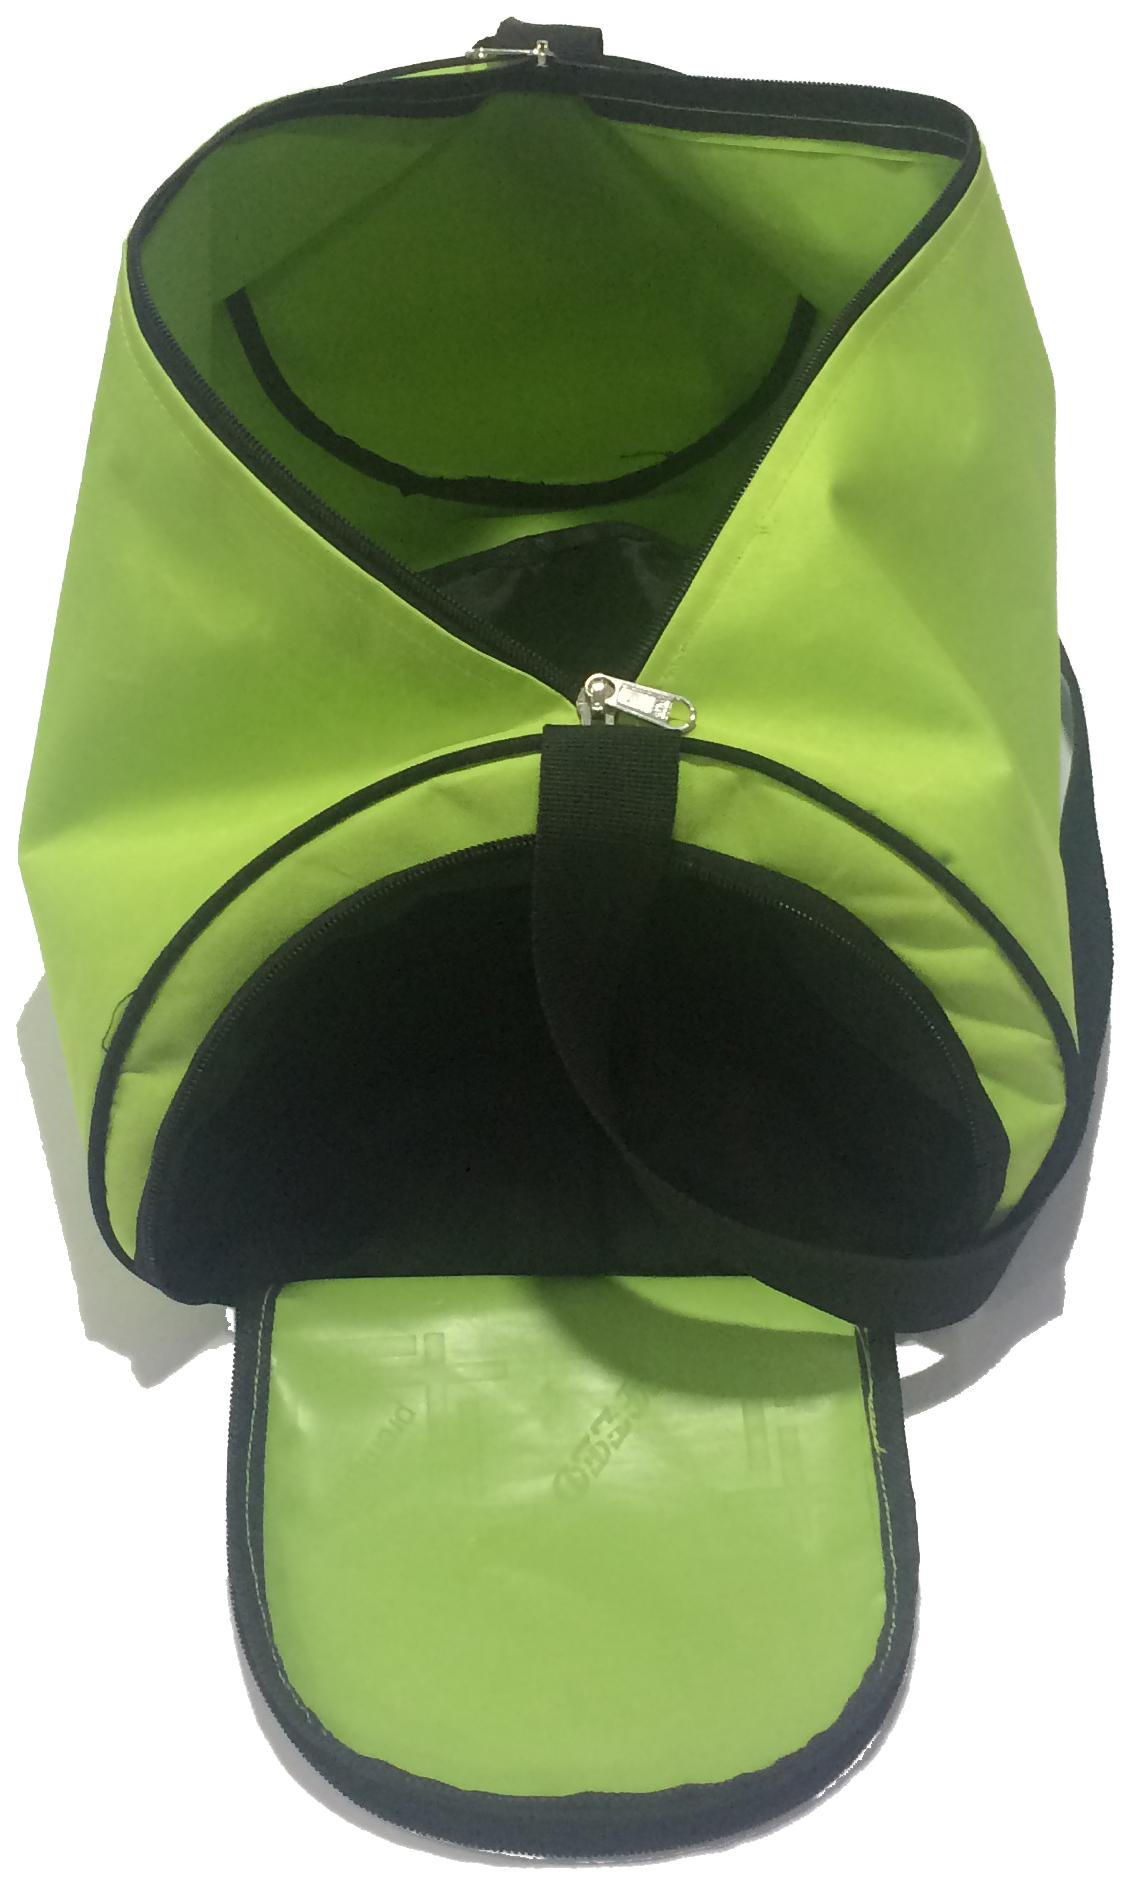 fd5a3bfa53 Buy Sybag Nylon Men Gym Bag - Green Online at Low Prices in India -  Paytmmall.com